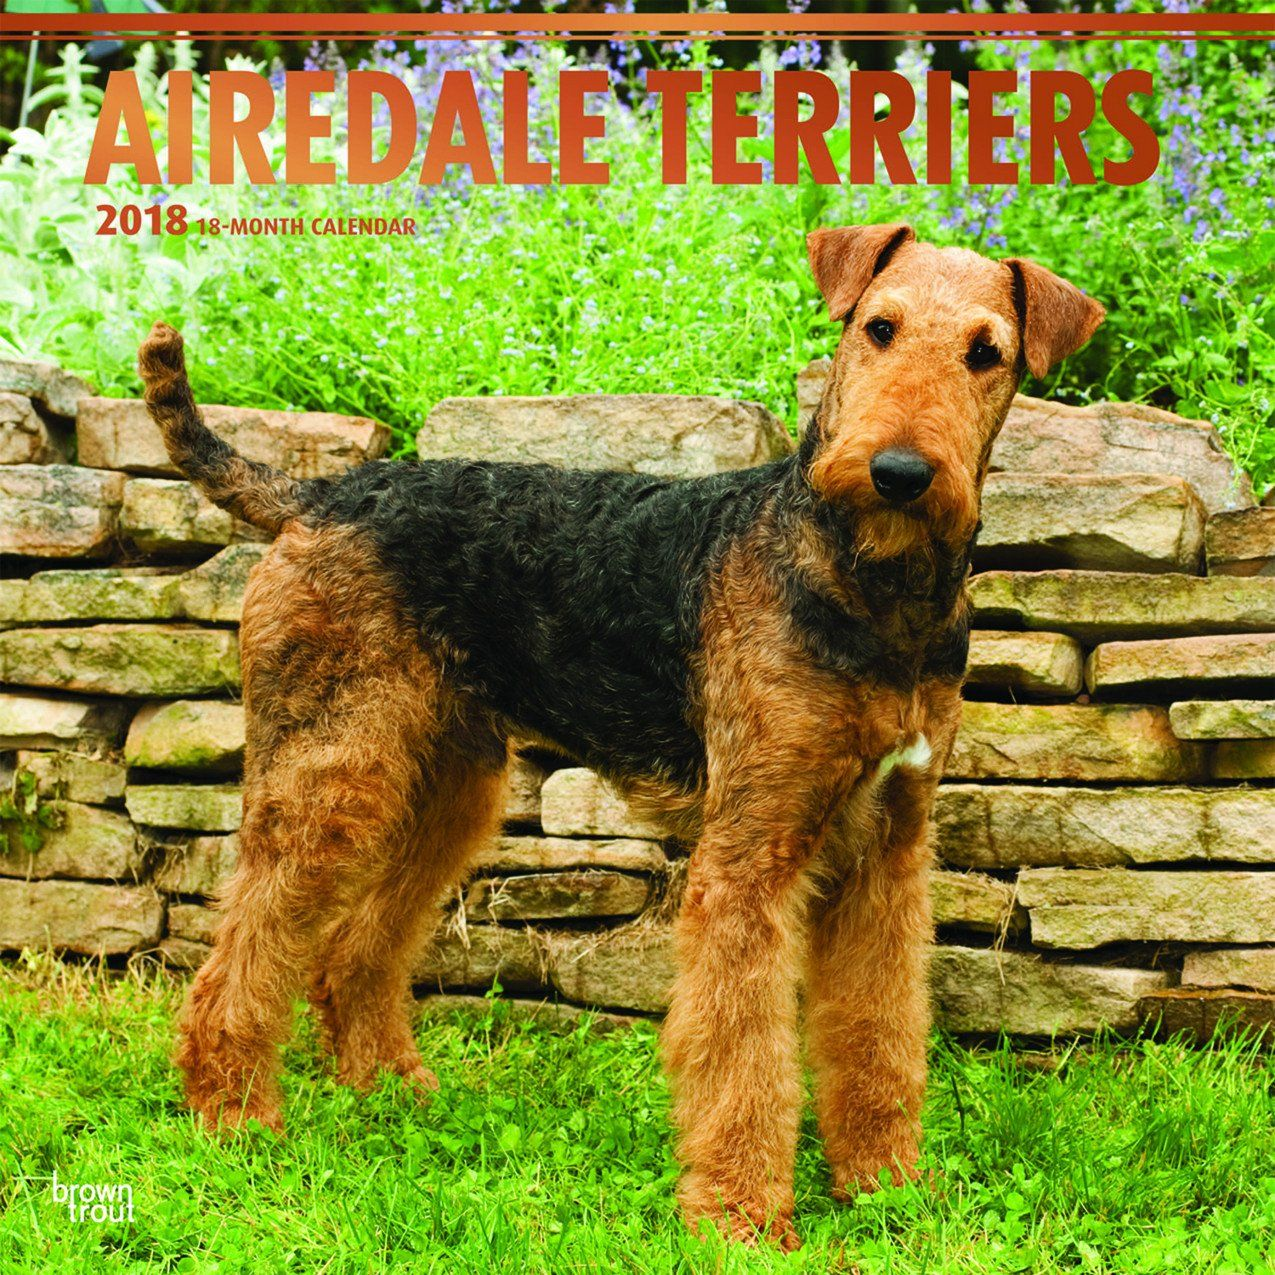 Airedale Terriers 2018 Wall Calendar Airedale Terrier Dog Breeds Large Dog Breeds